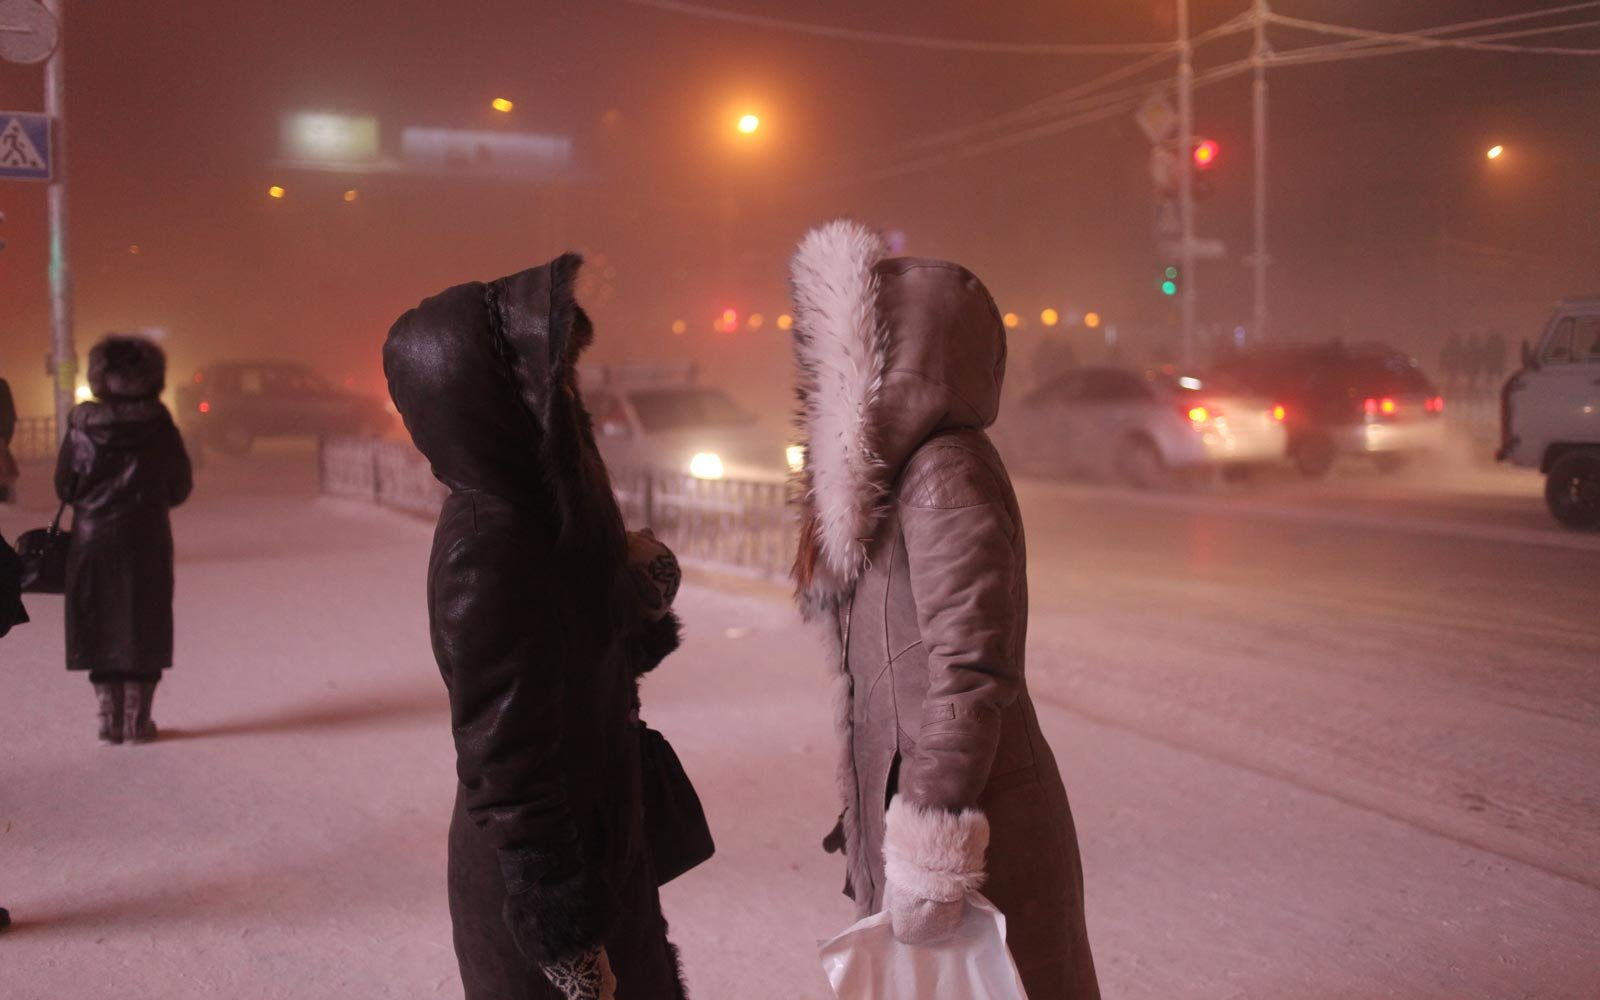 21 amazing photos that show what life is like in the coldest inhabited town on Earth